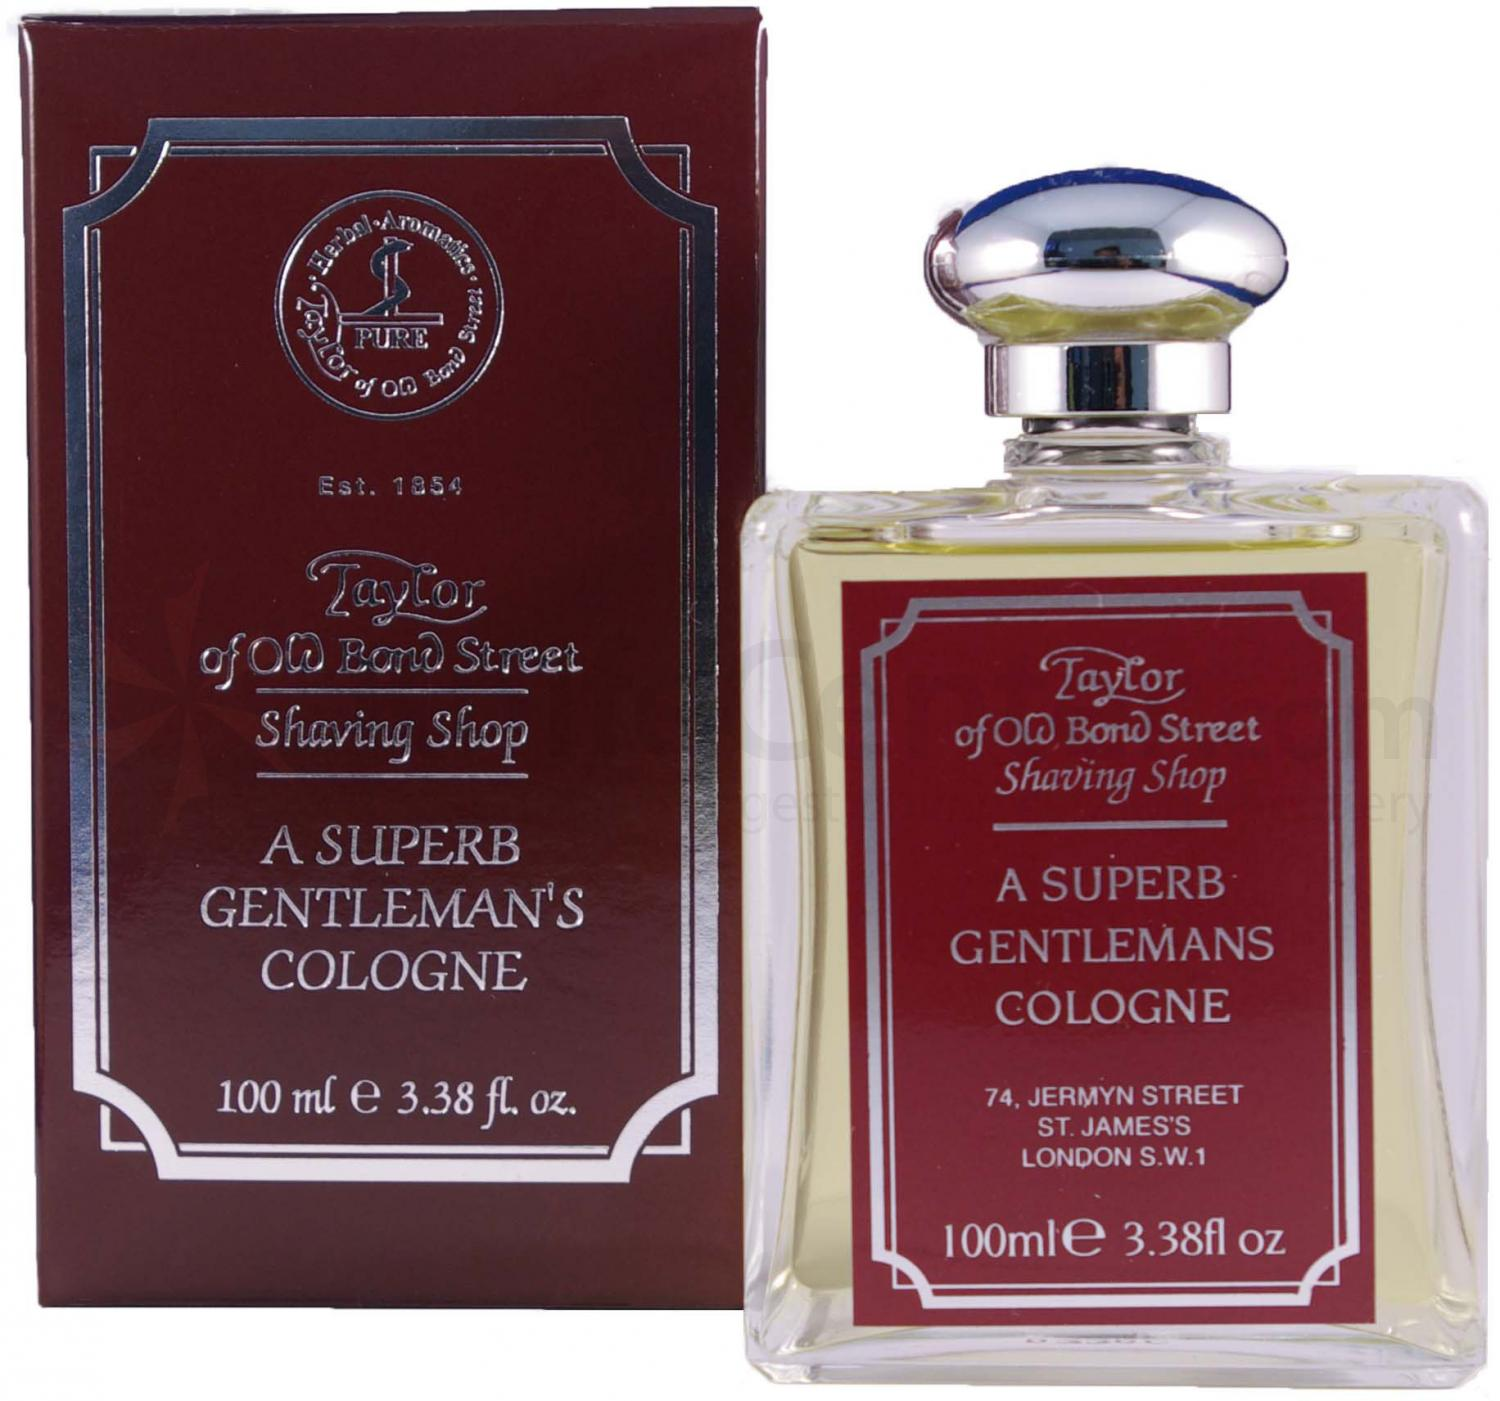 Taylor of Old Bond Street Shaving Shop Gentleman's Aftershave Lotion 3.38 oz (100ml)